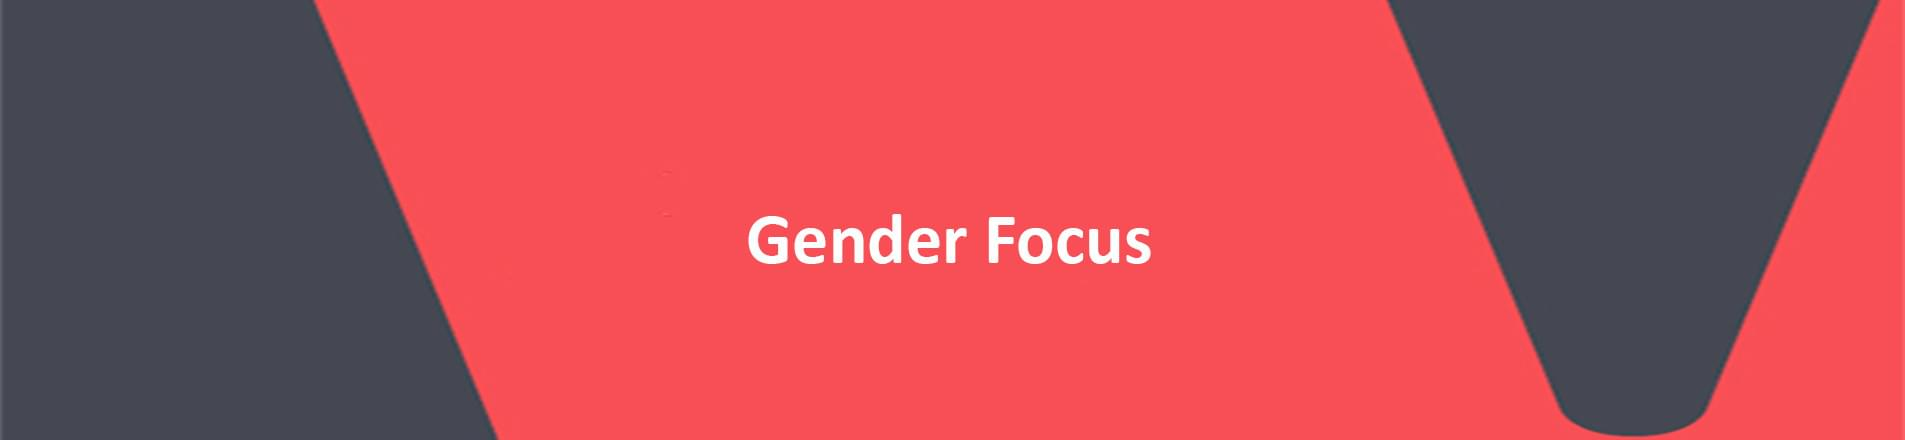 Words gender Focus on red VERCIDA branded background